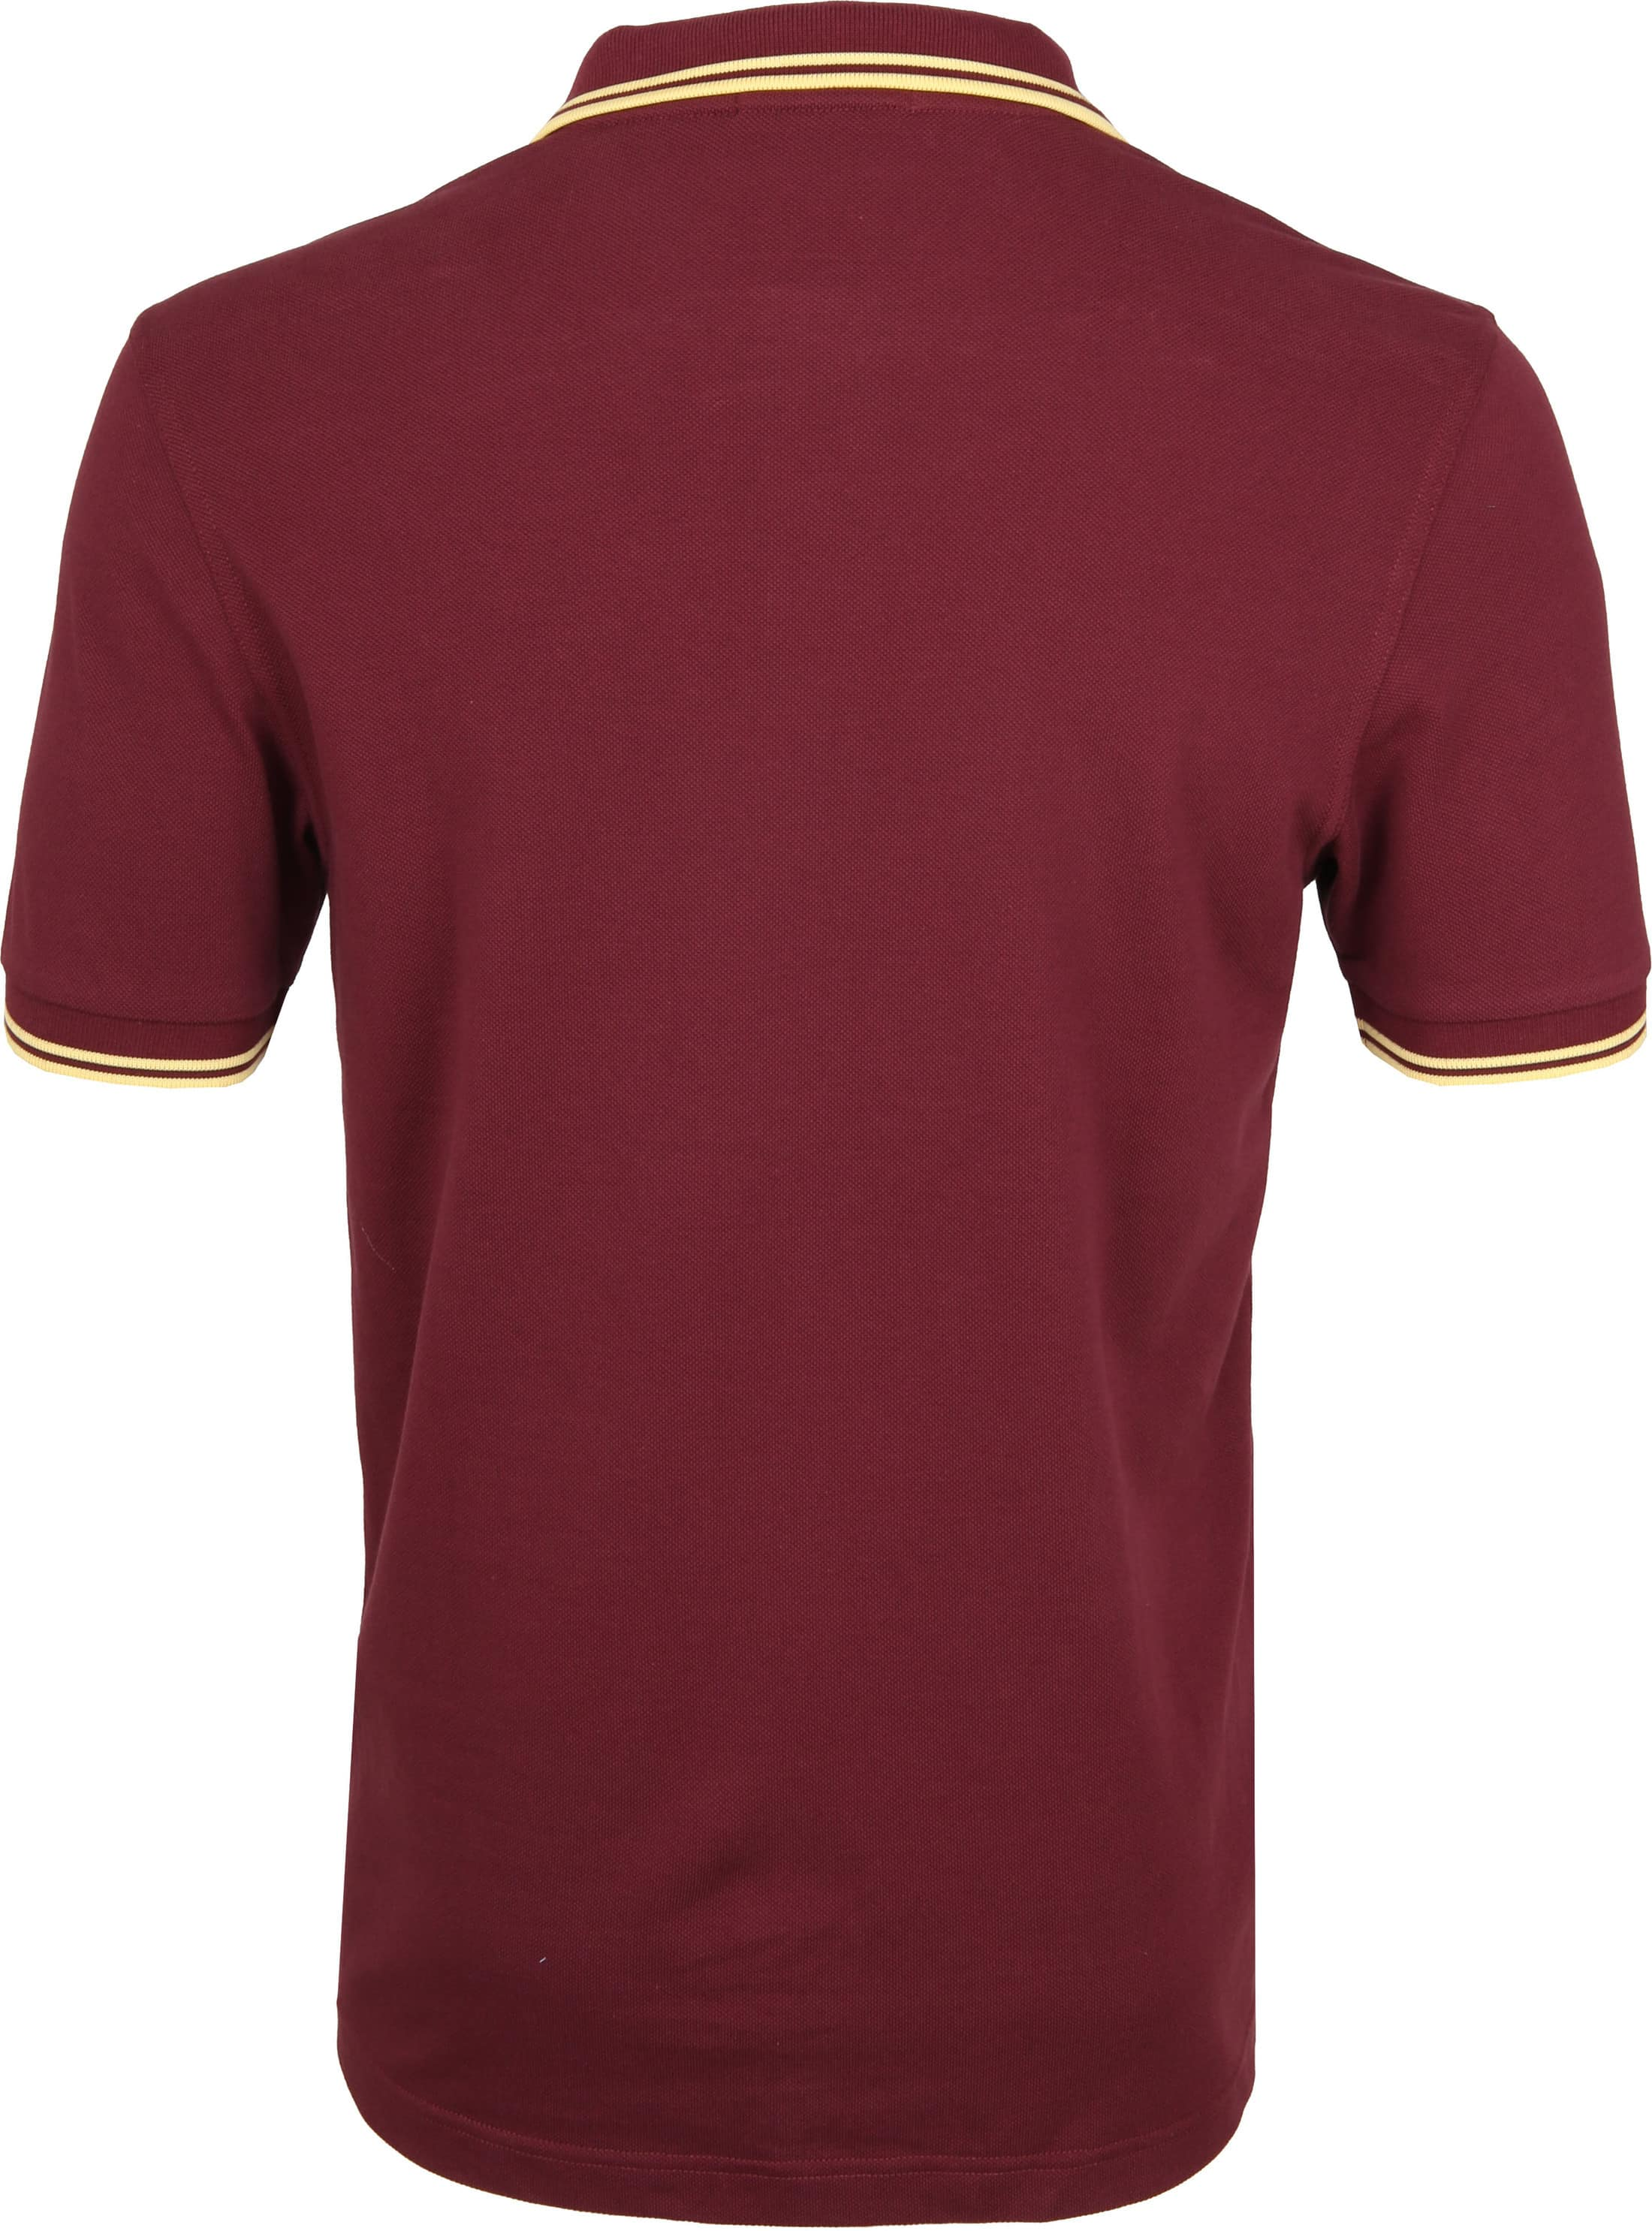 Fred Perry Polo Bordeaux 472 foto 2